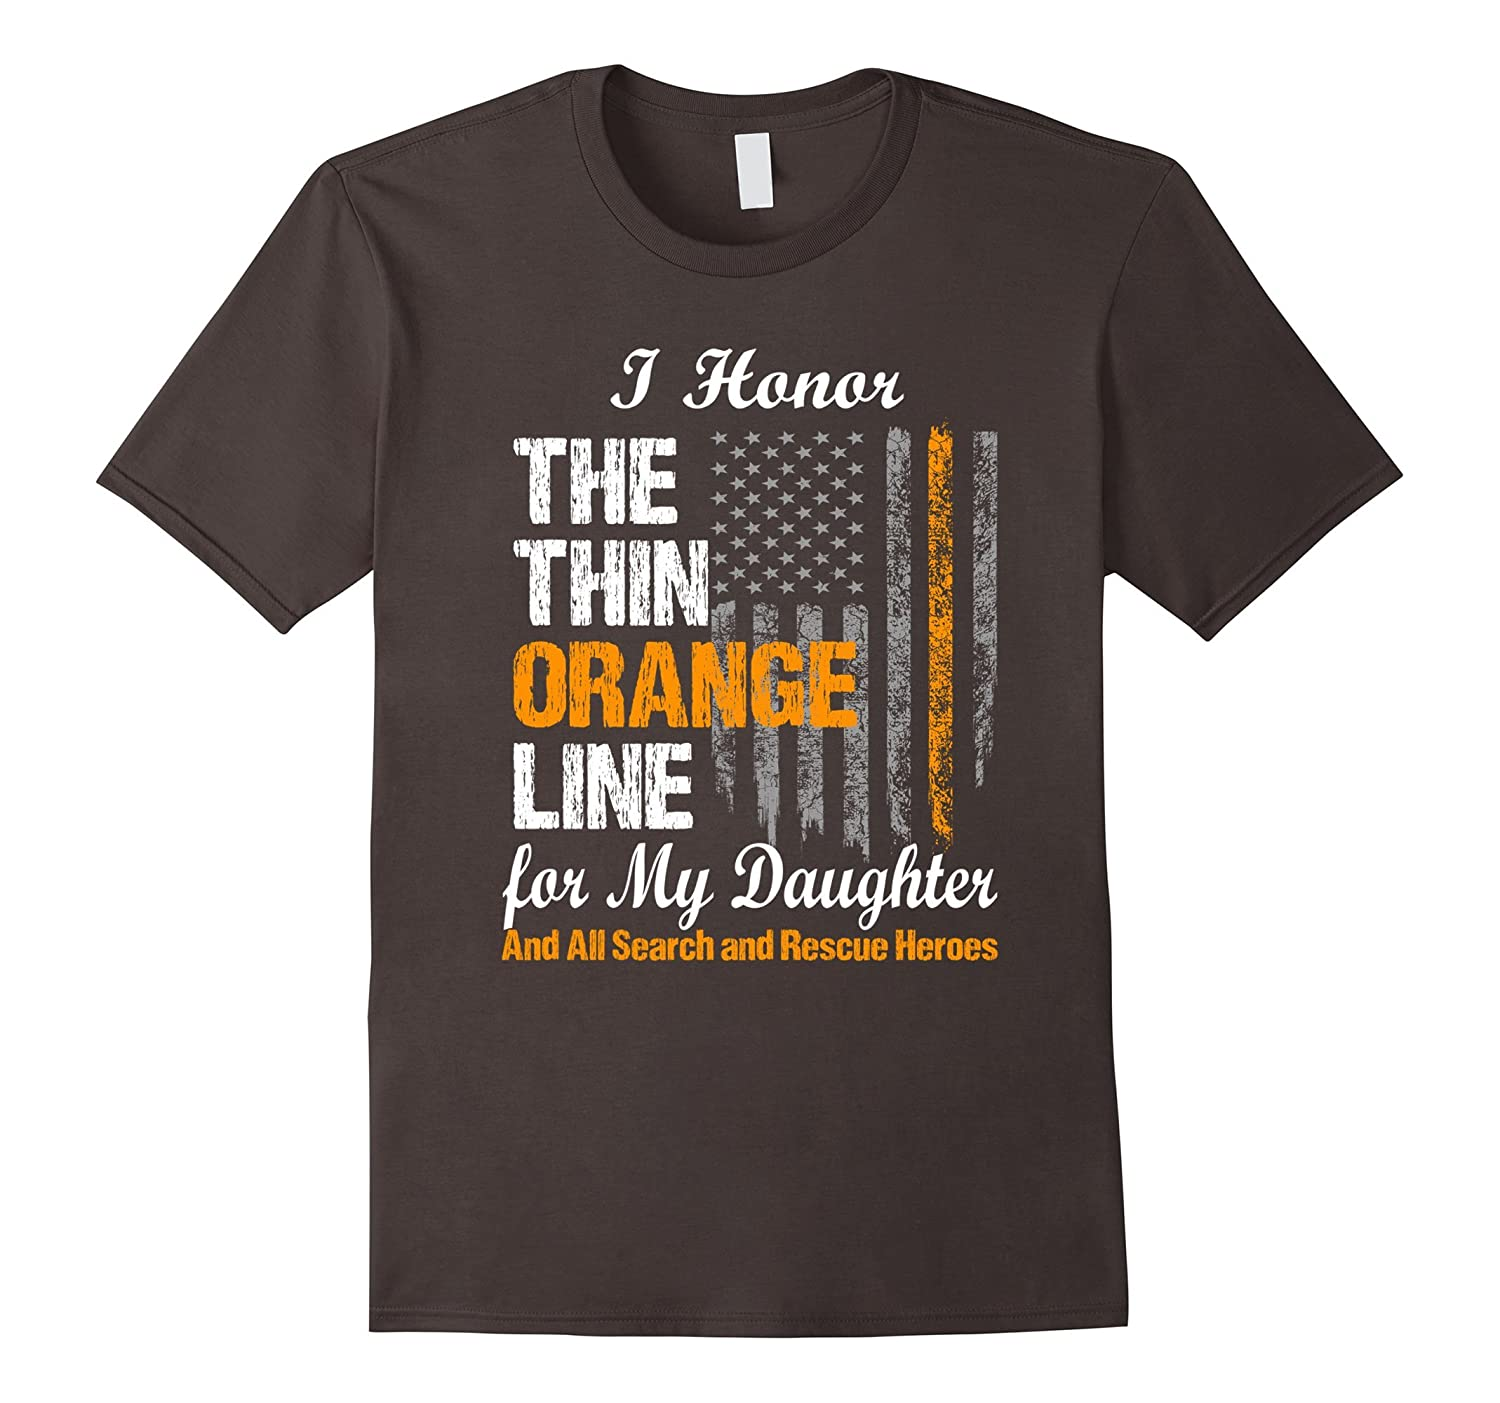 Search and rescue t shirts – Honor My Hero Daughter